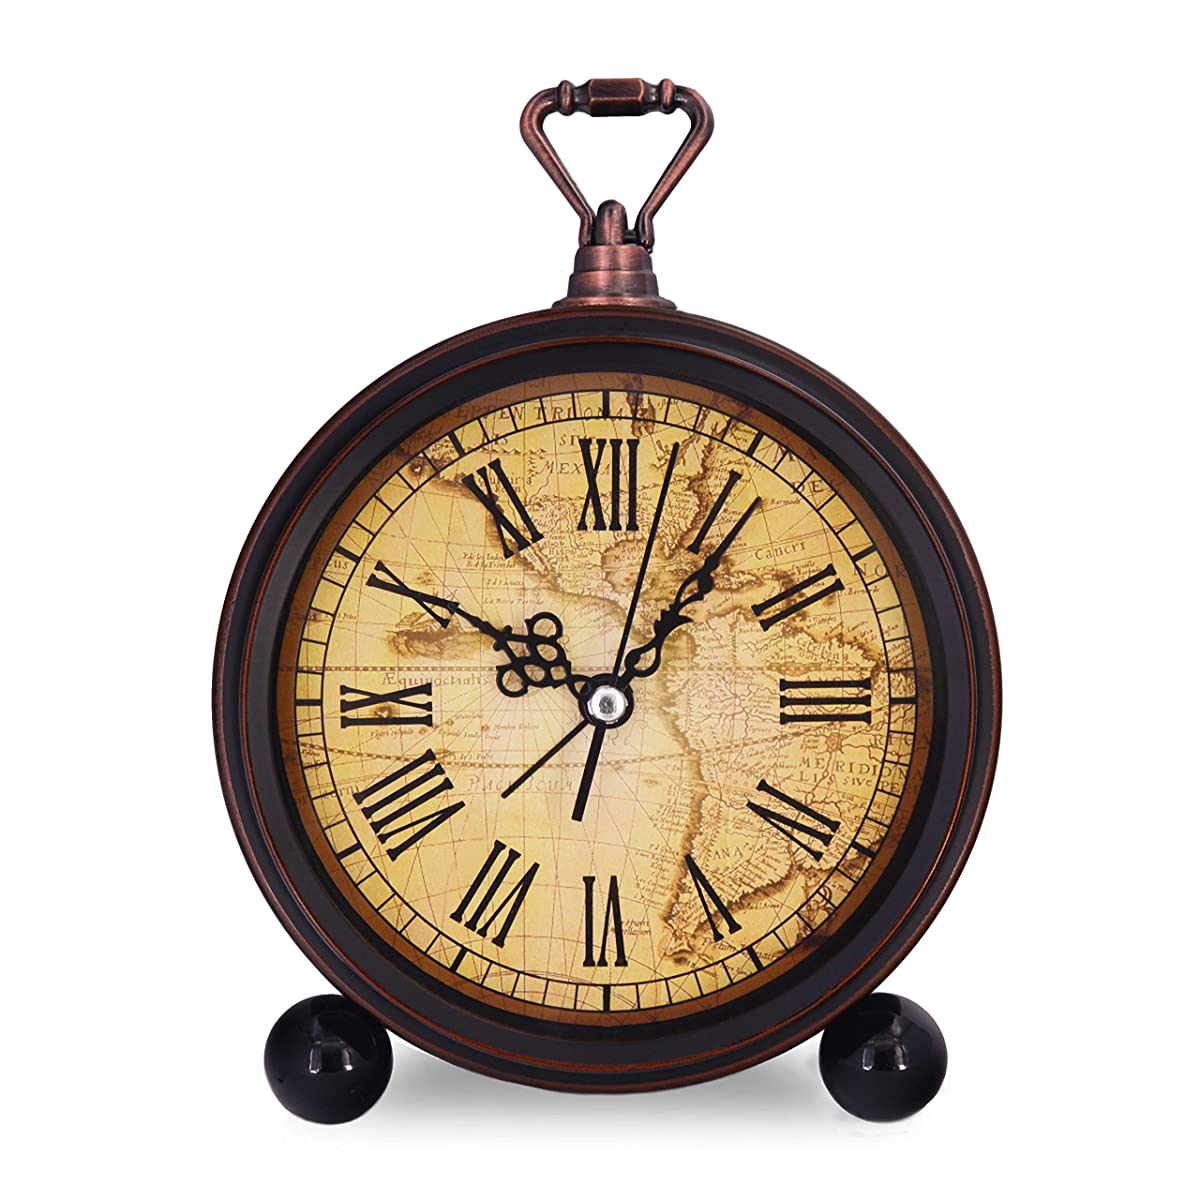 Vintage retro living room decorative non ticking sweep second vintage retro living room decorative non ticking sweep second hand quartz analog large numerals bedside table gumiabroncs Choice Image